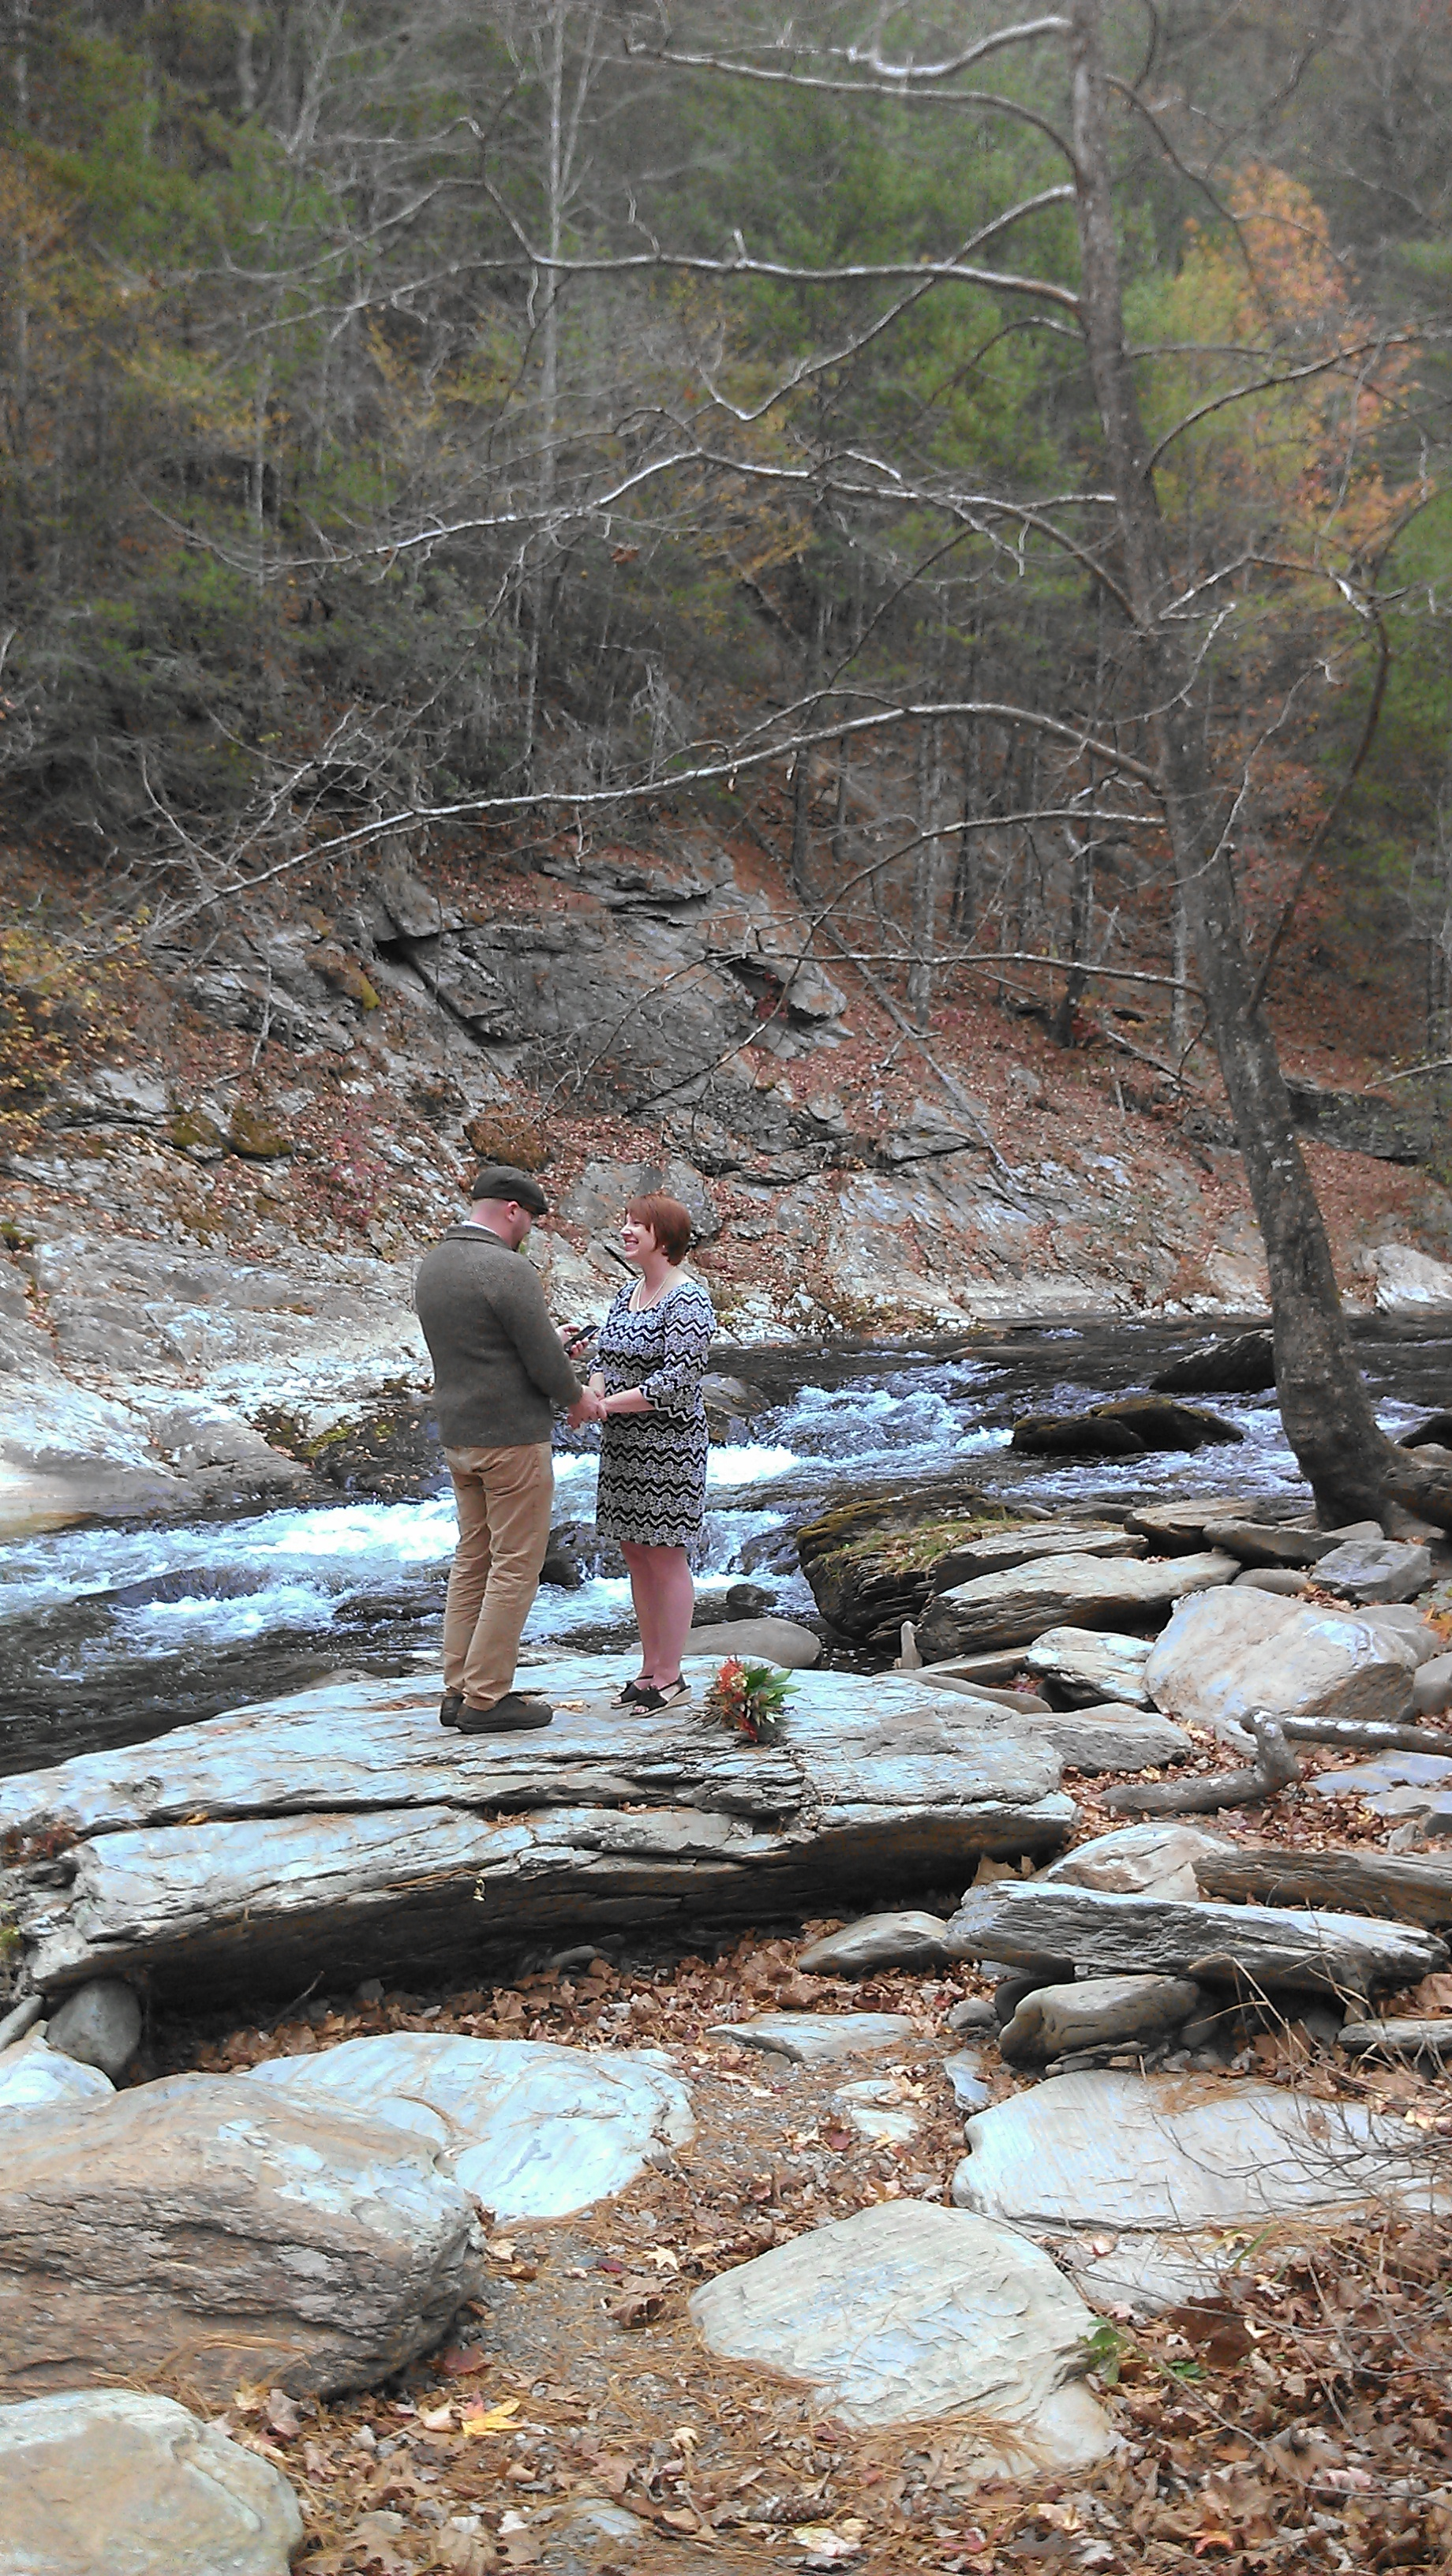 We privately said our own vows to each other in a beautiful spot near Bald River Falls.